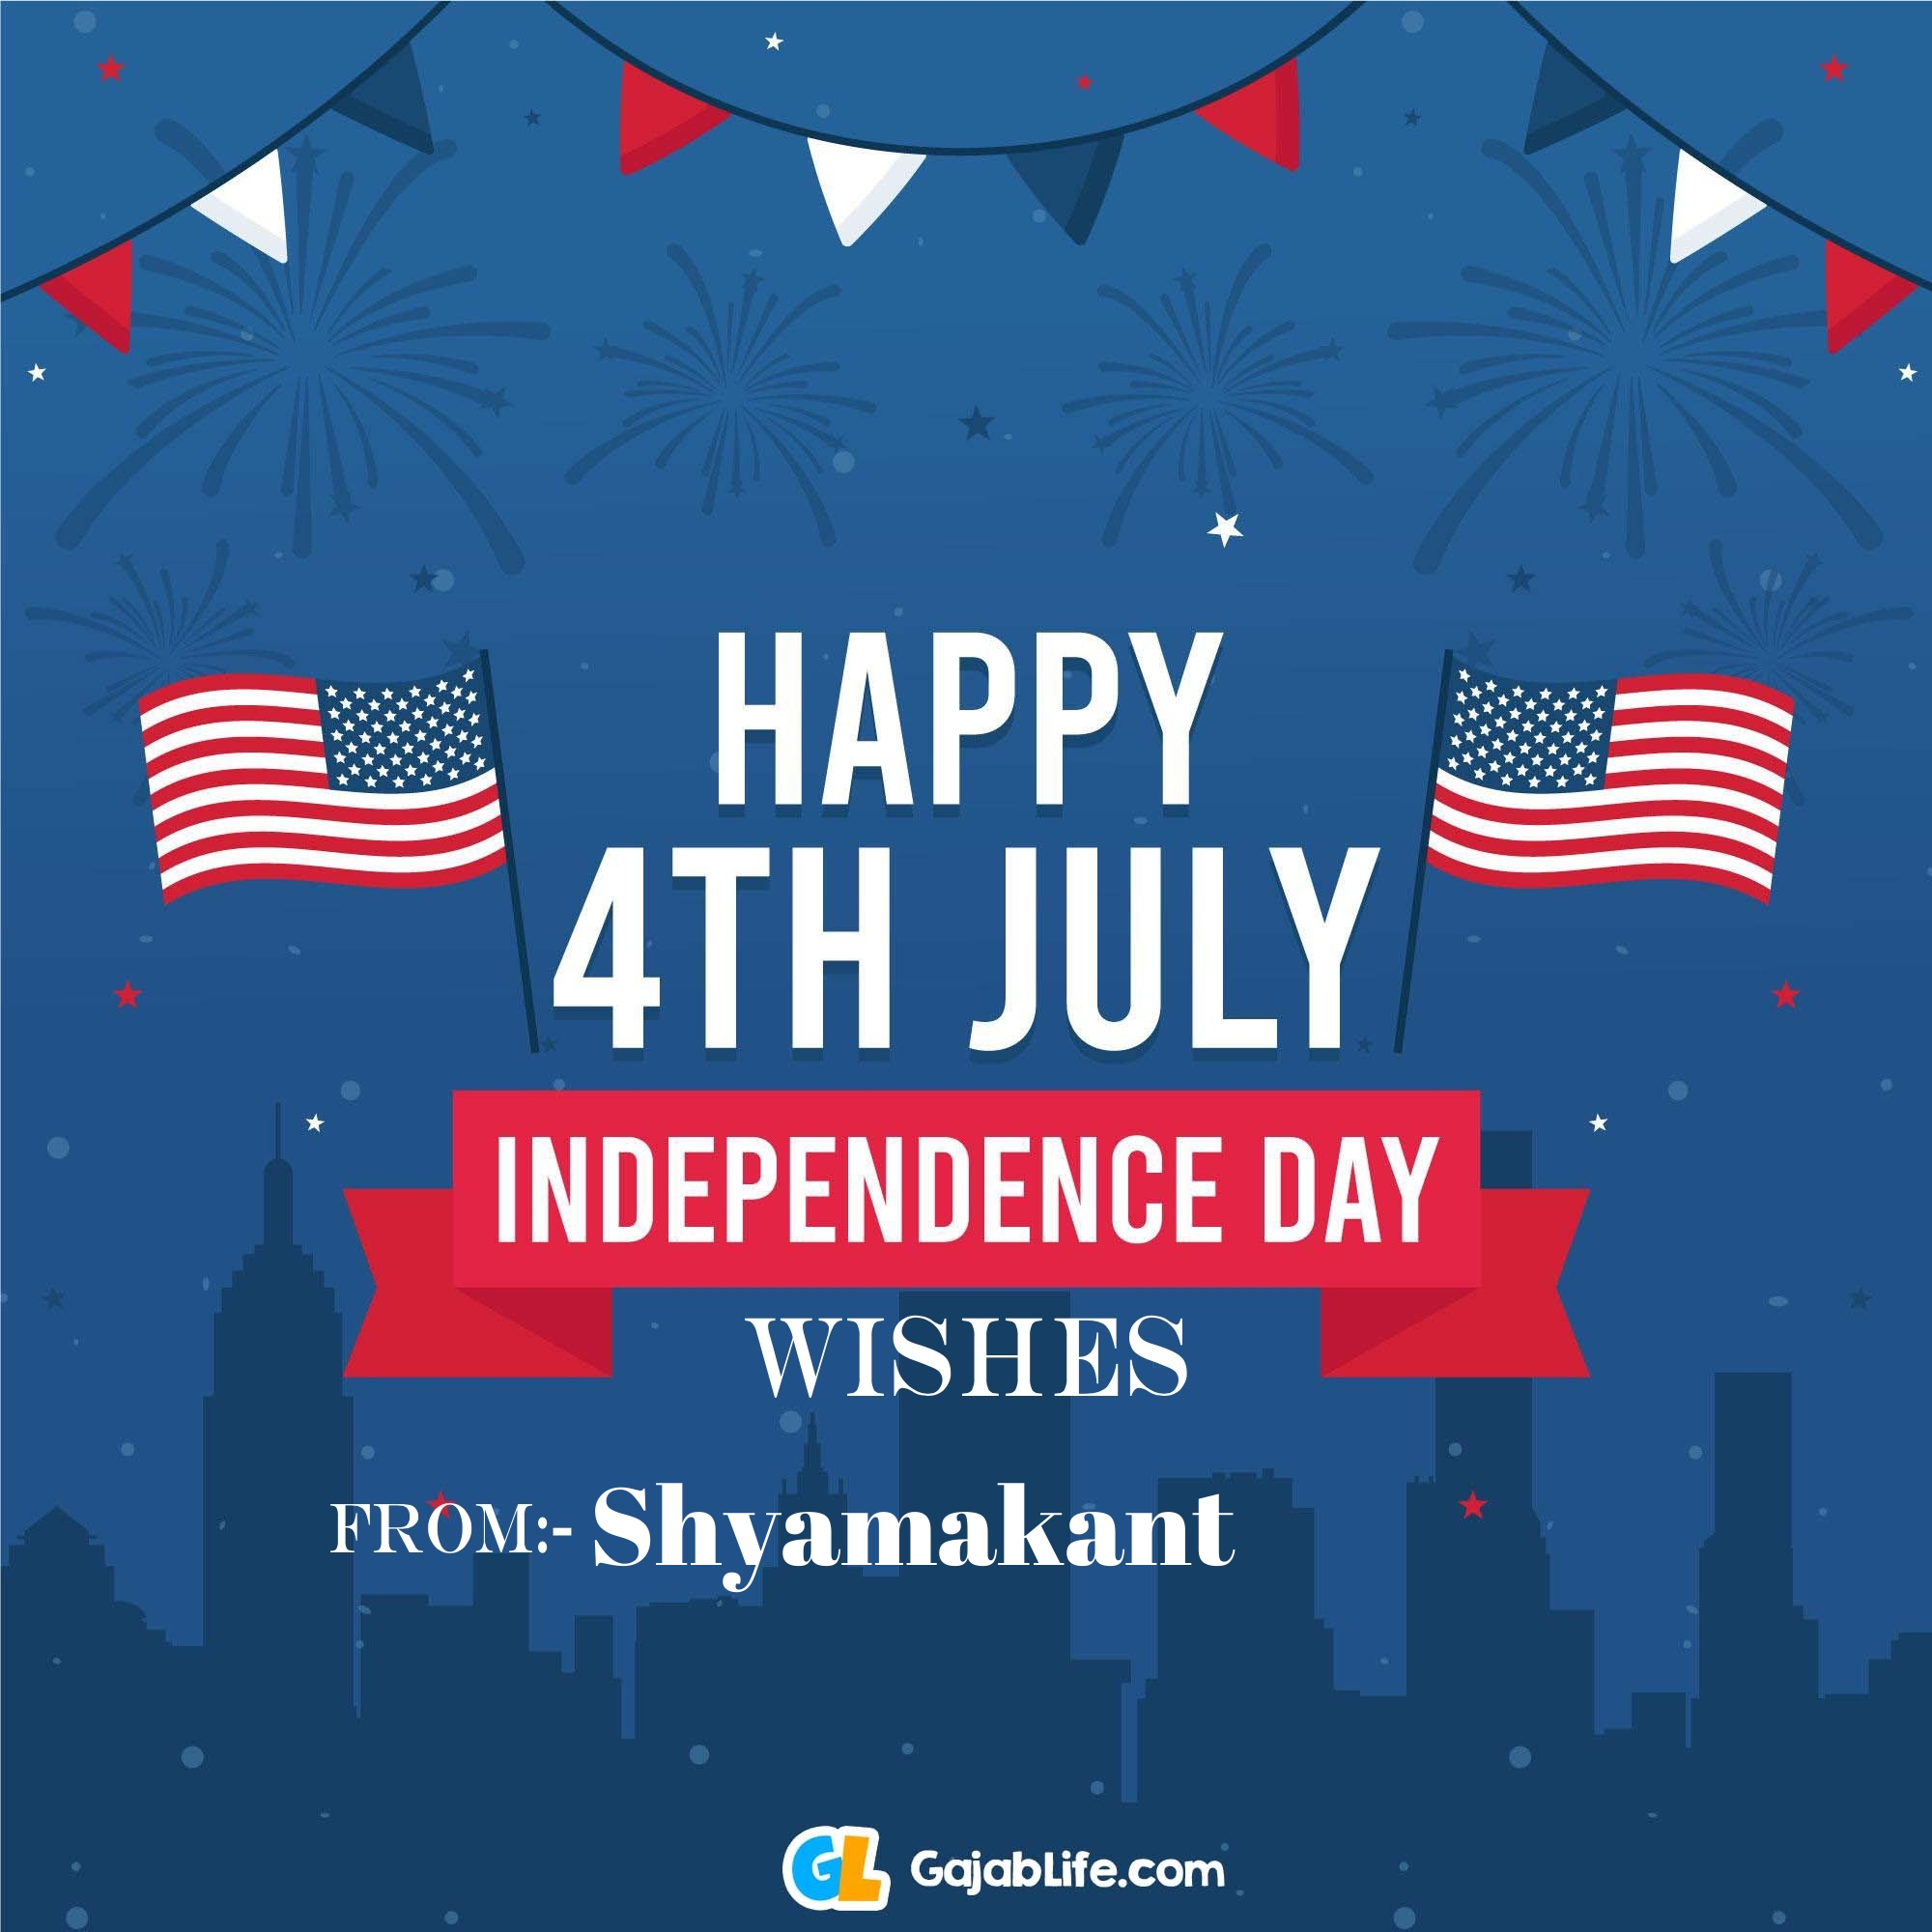 Shyamakant happy independence day united states of america images